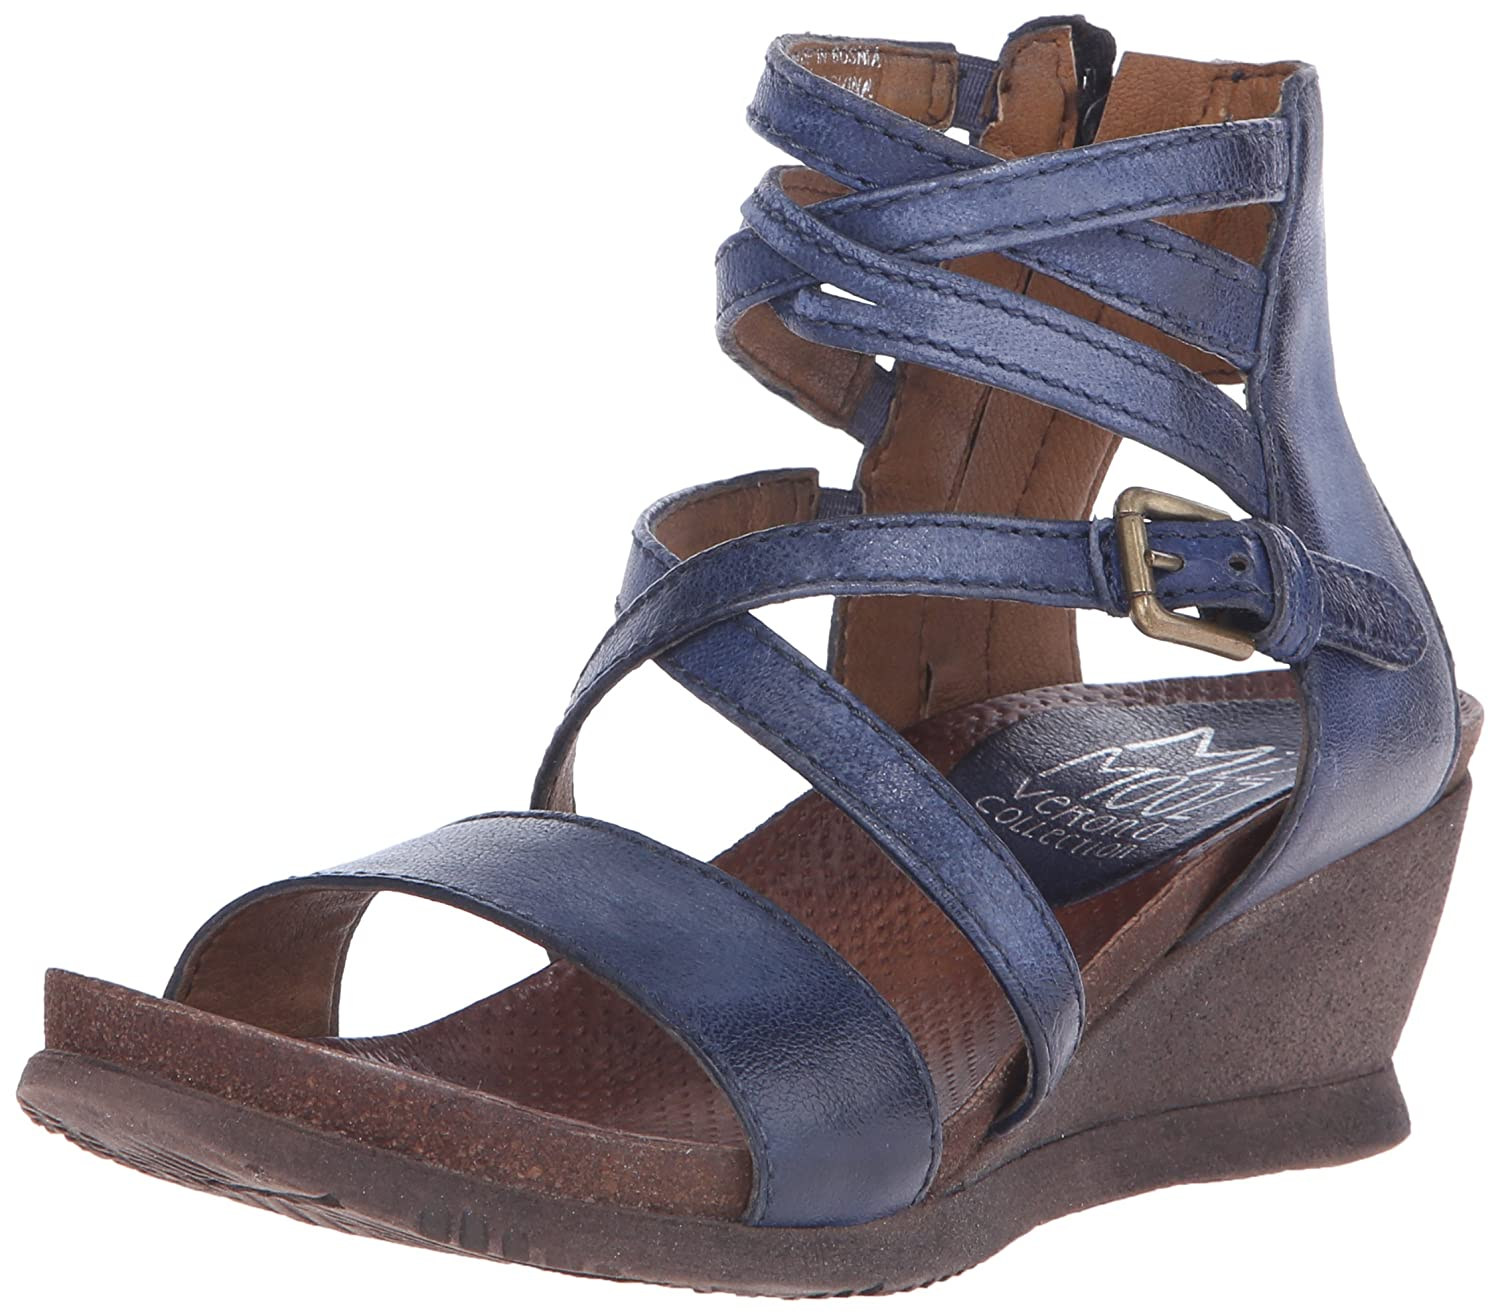 Navy Miz Mooz Women's Shay Fashion Sandals